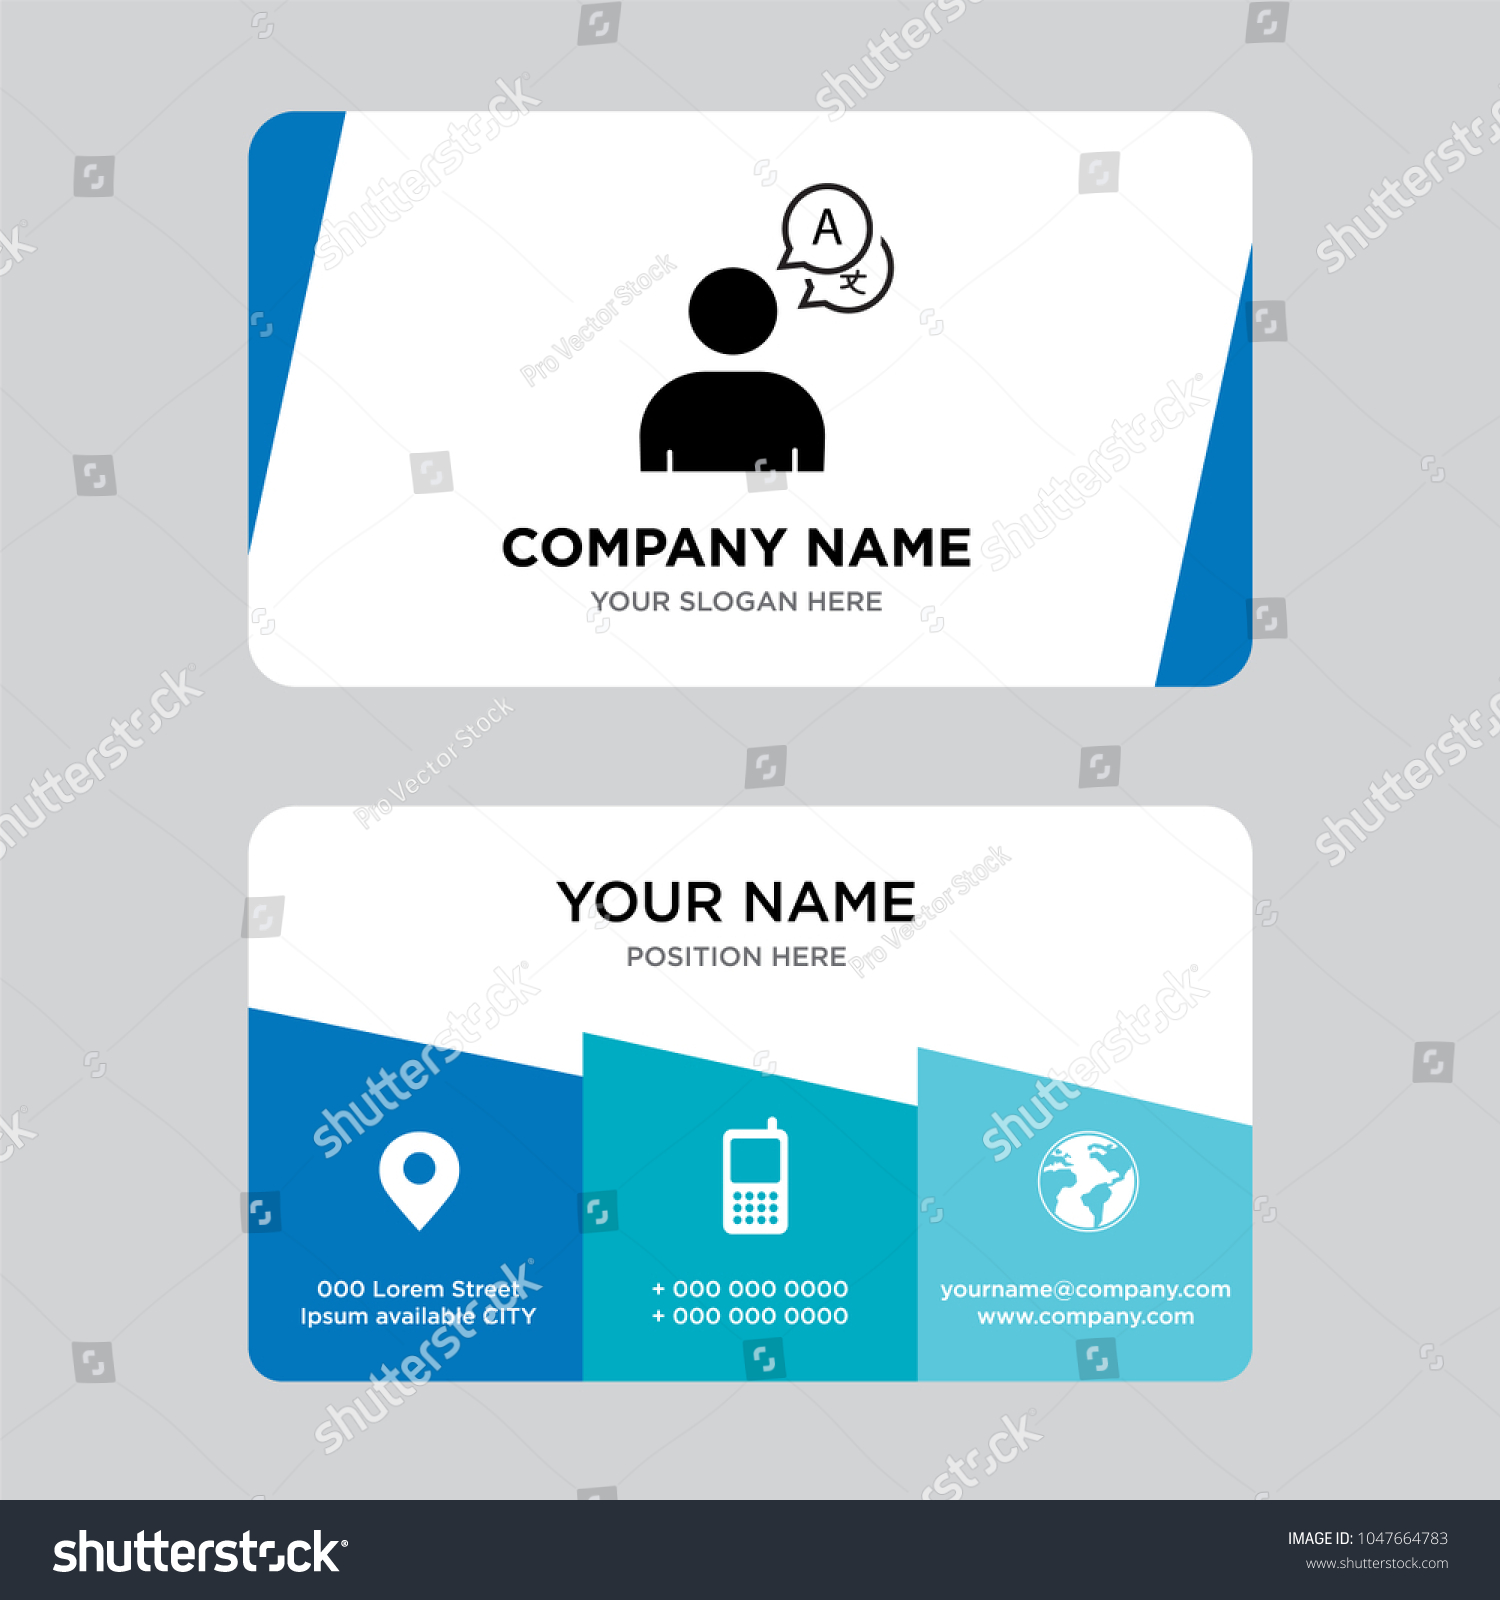 Bilingual Business Card Design Template Visiting Stock Vector ...